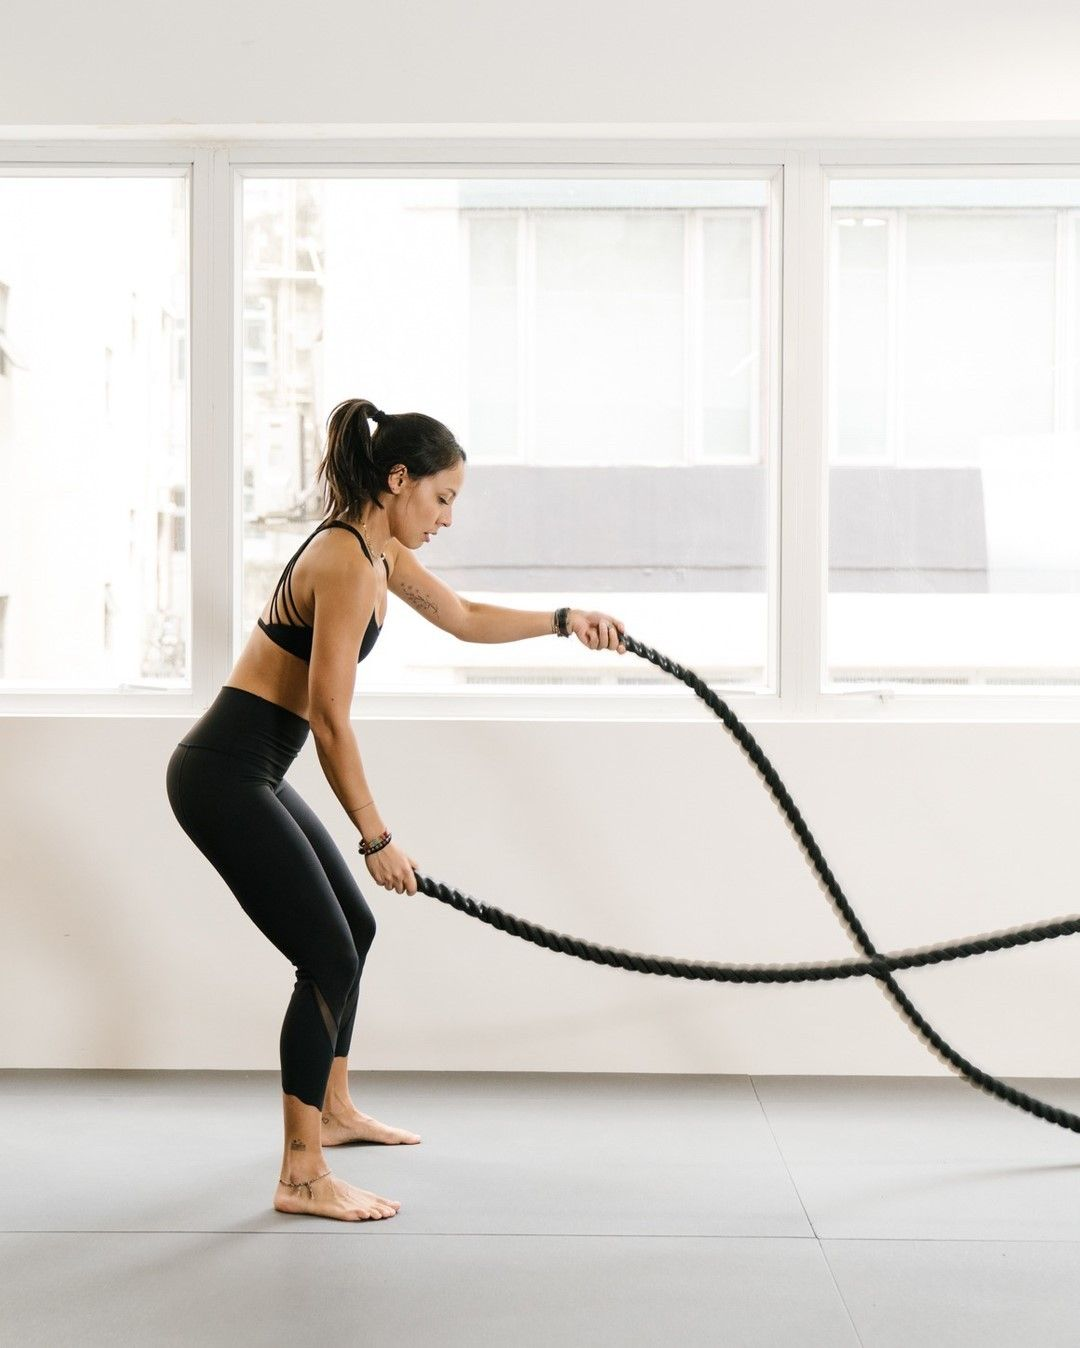 8 Best Personal Training Gyms in Hong Kong